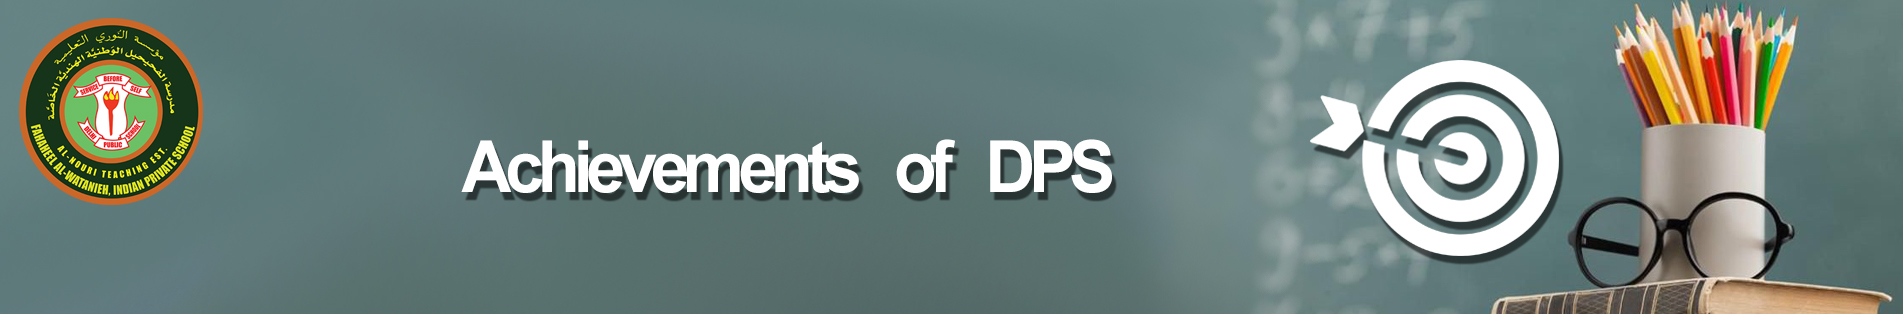 Achievements of DPS